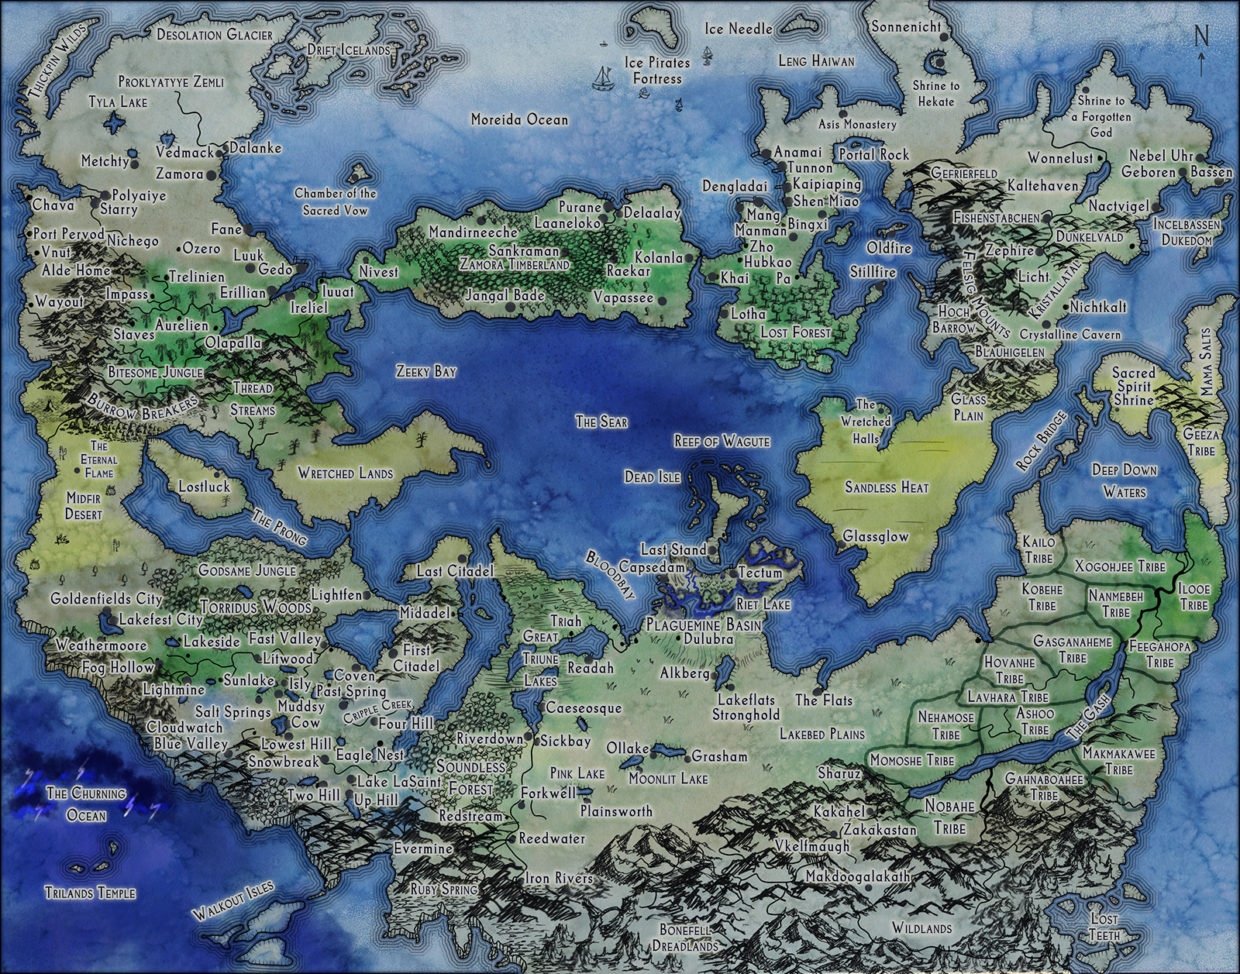 Fantasy World Map Stormtomes Large Fantasy World Map for RPG 5e Dungeons and Dragons  Fantasy World Map